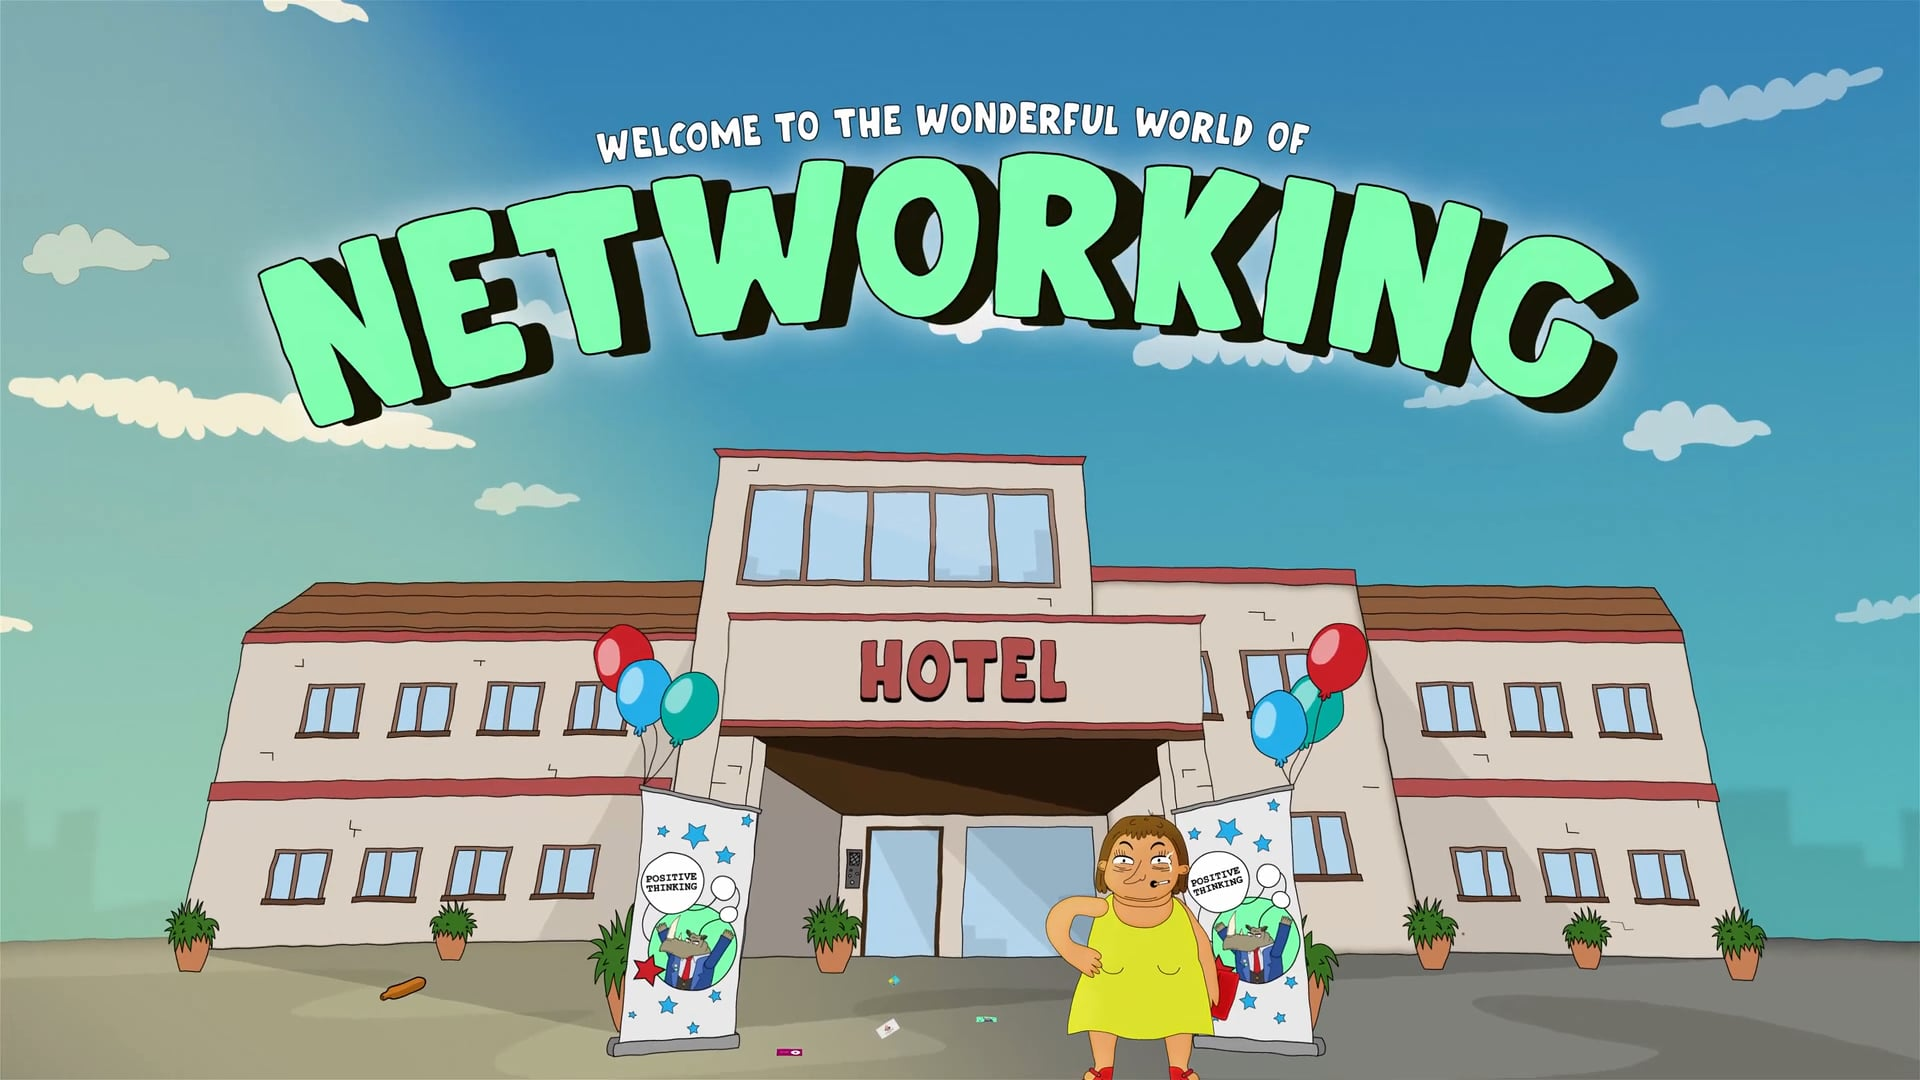 The Wonderful World of Networking